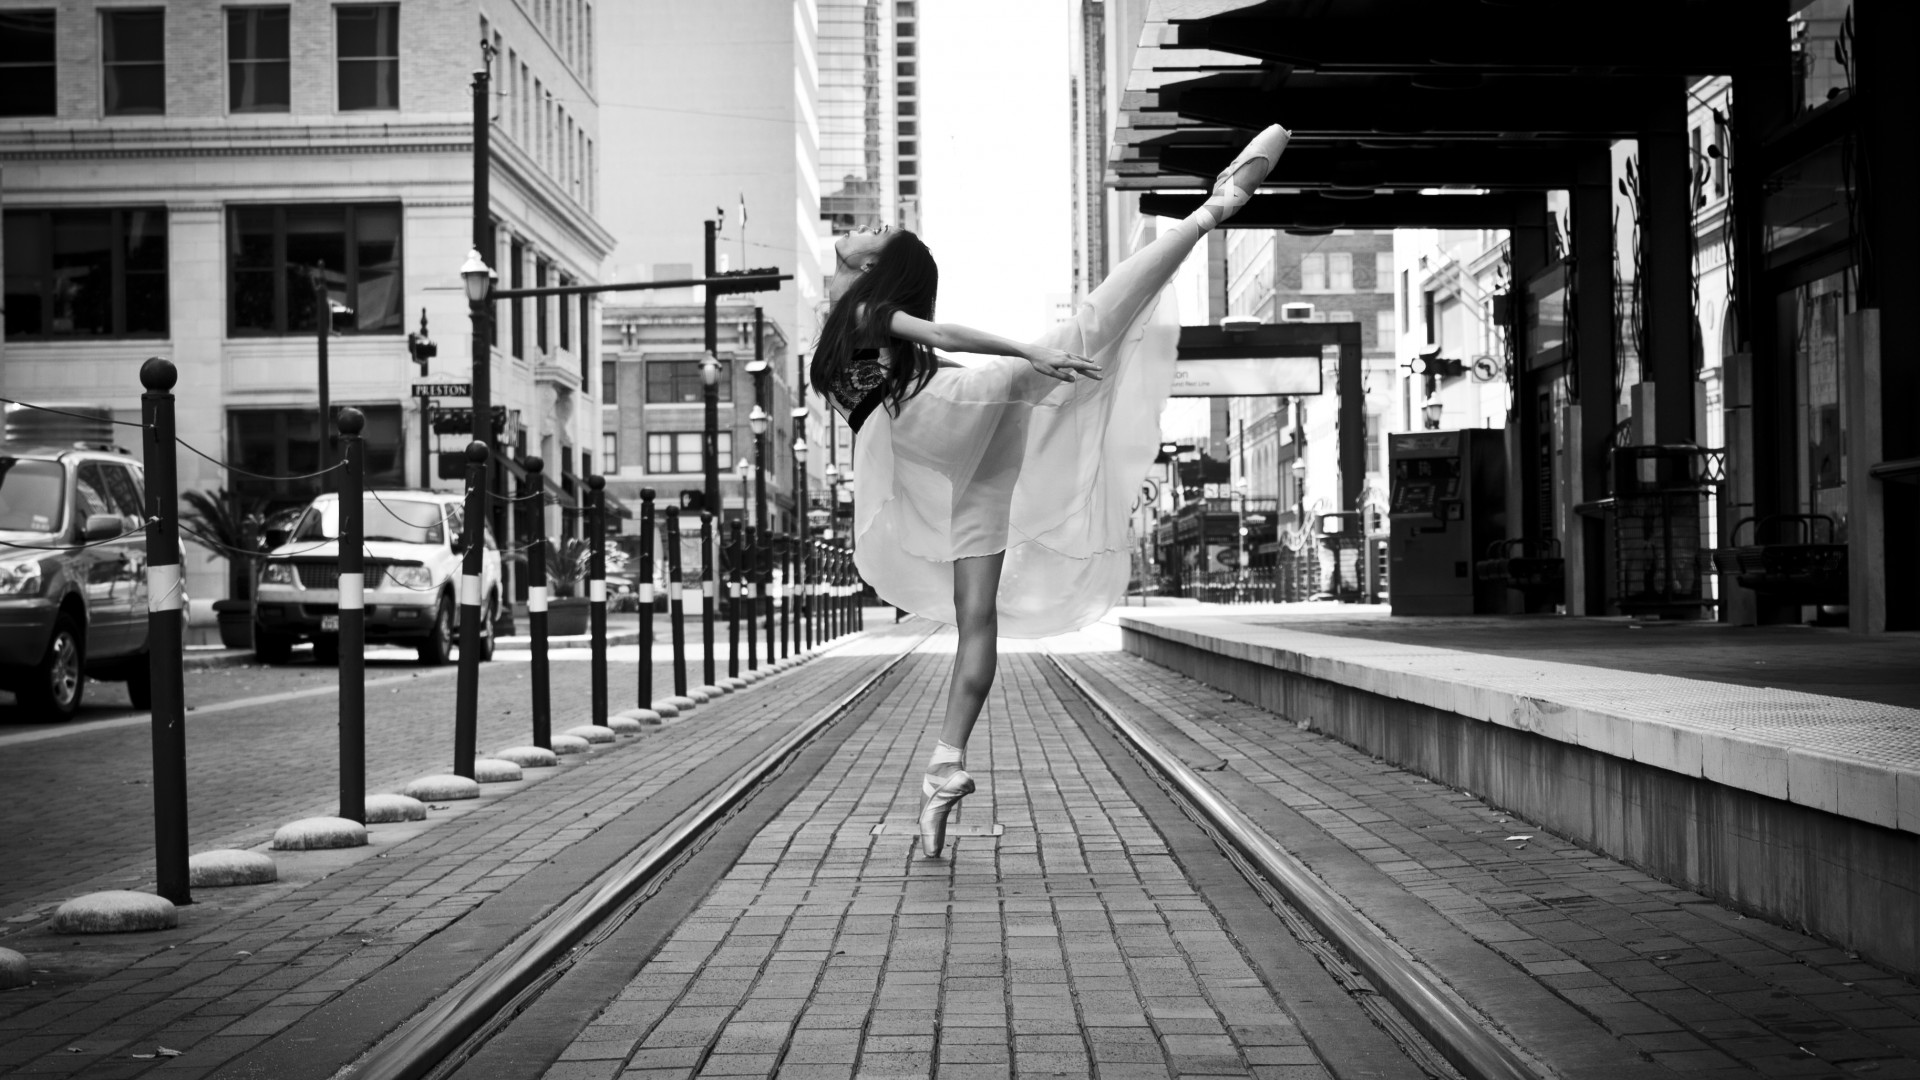 Wallpaper city dancer street Ballet dancer on a city street 1920x1080